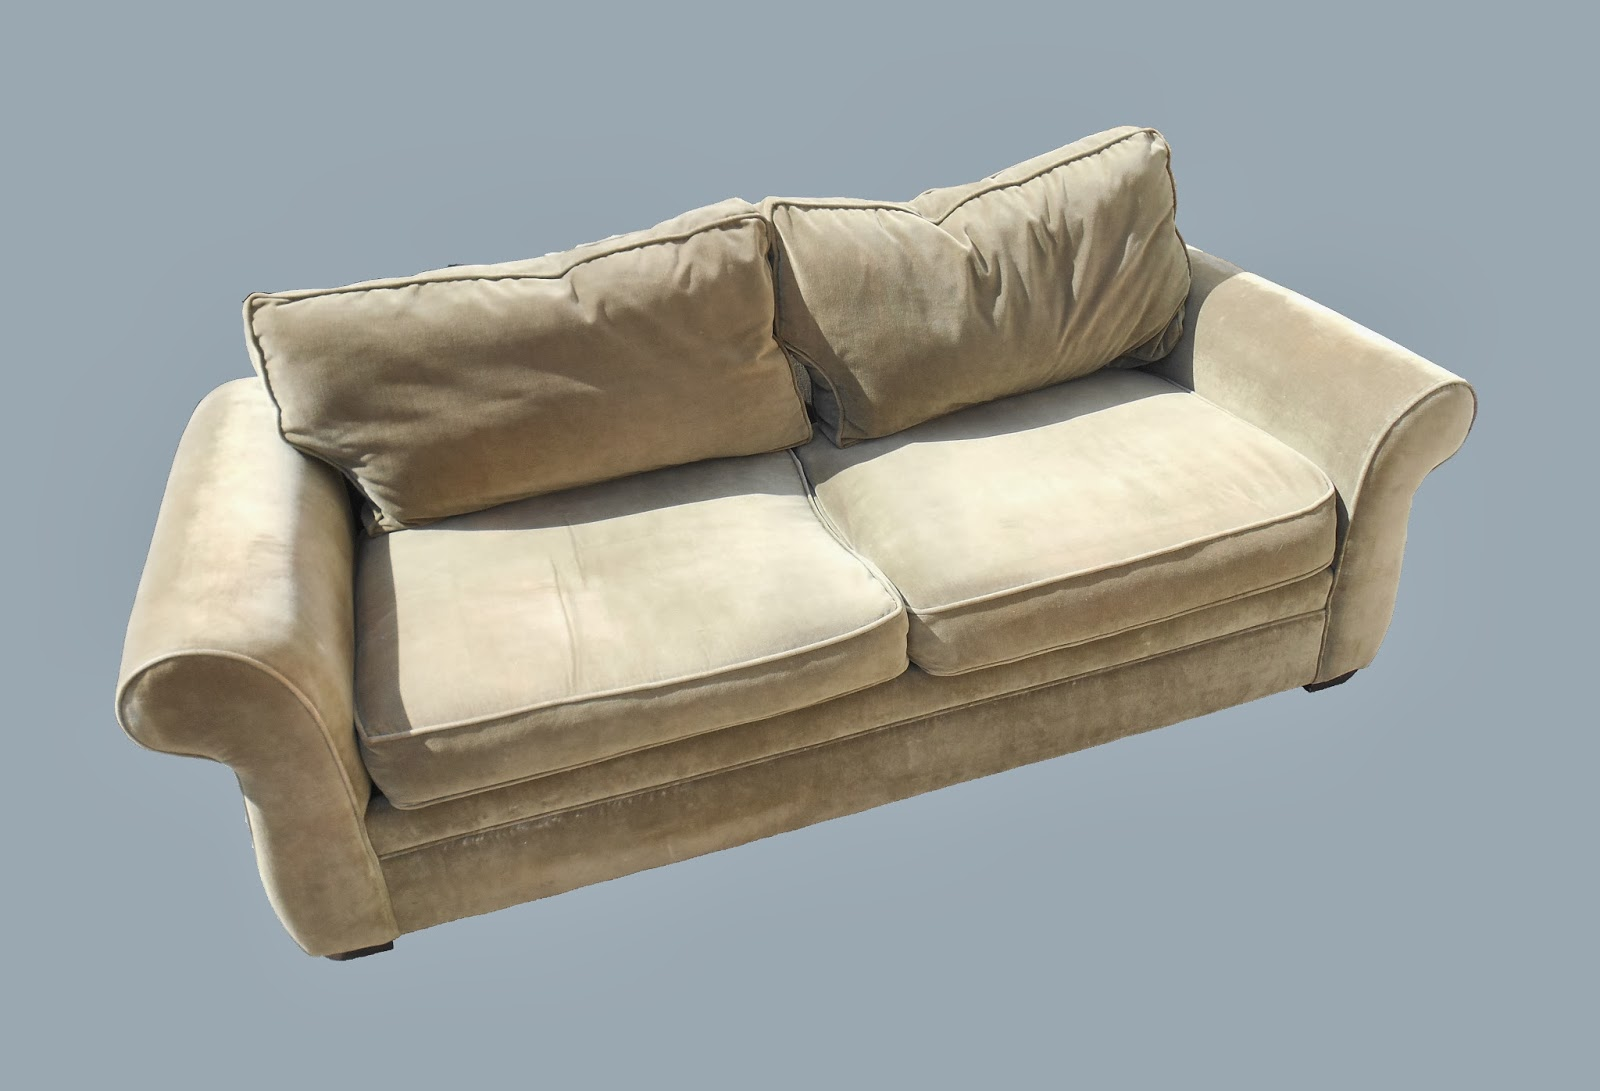 Uhuru furniture collectibles sage velour sofa reduced for Reduced furniture